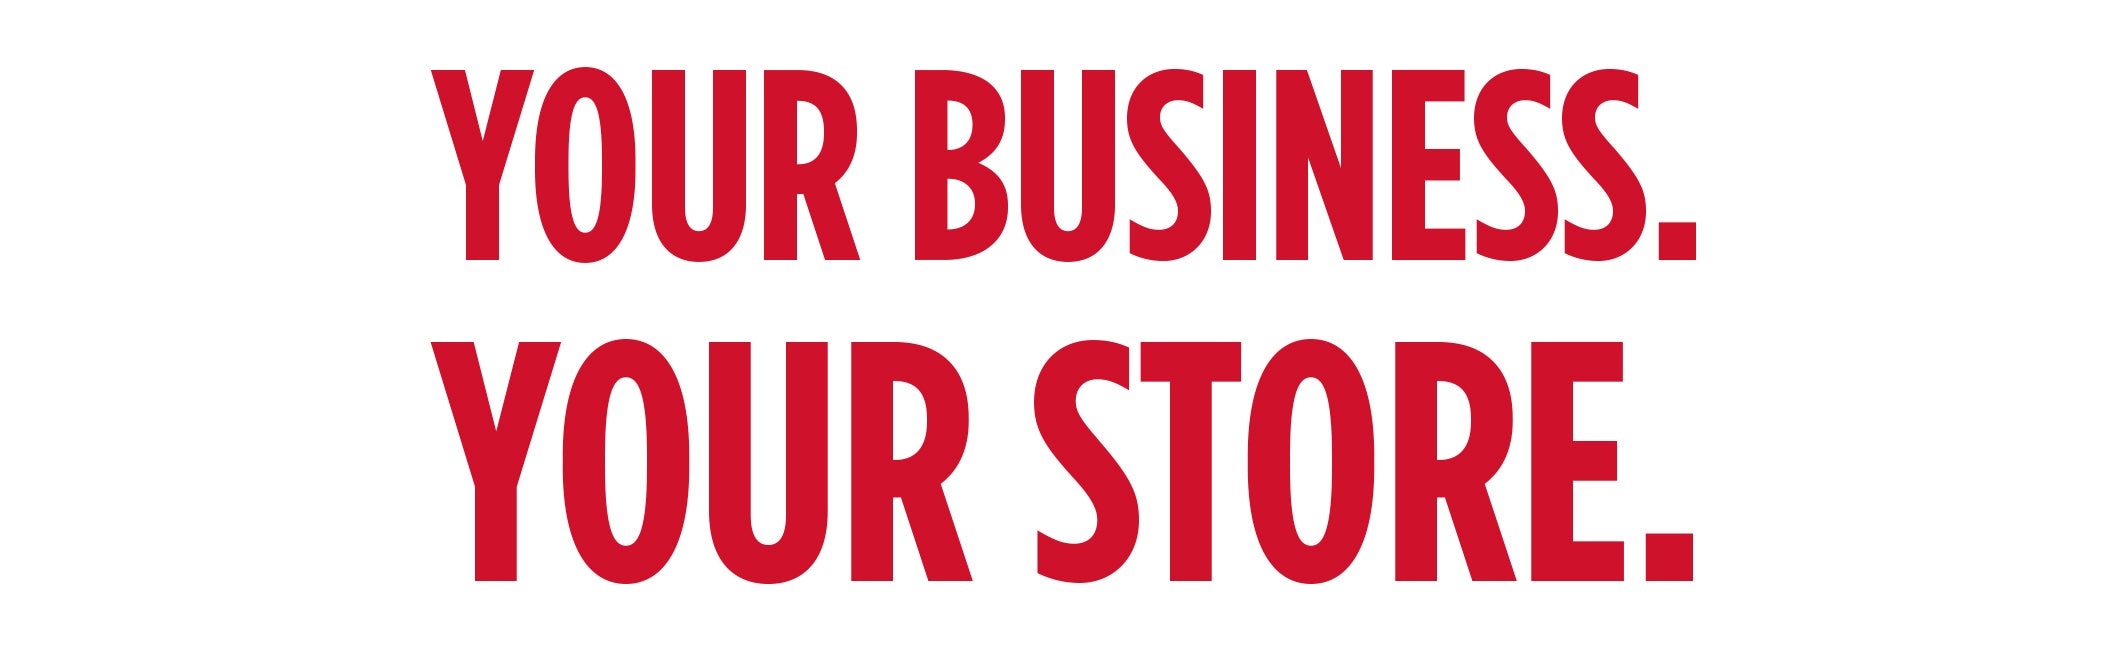 Your Business. Your Store.